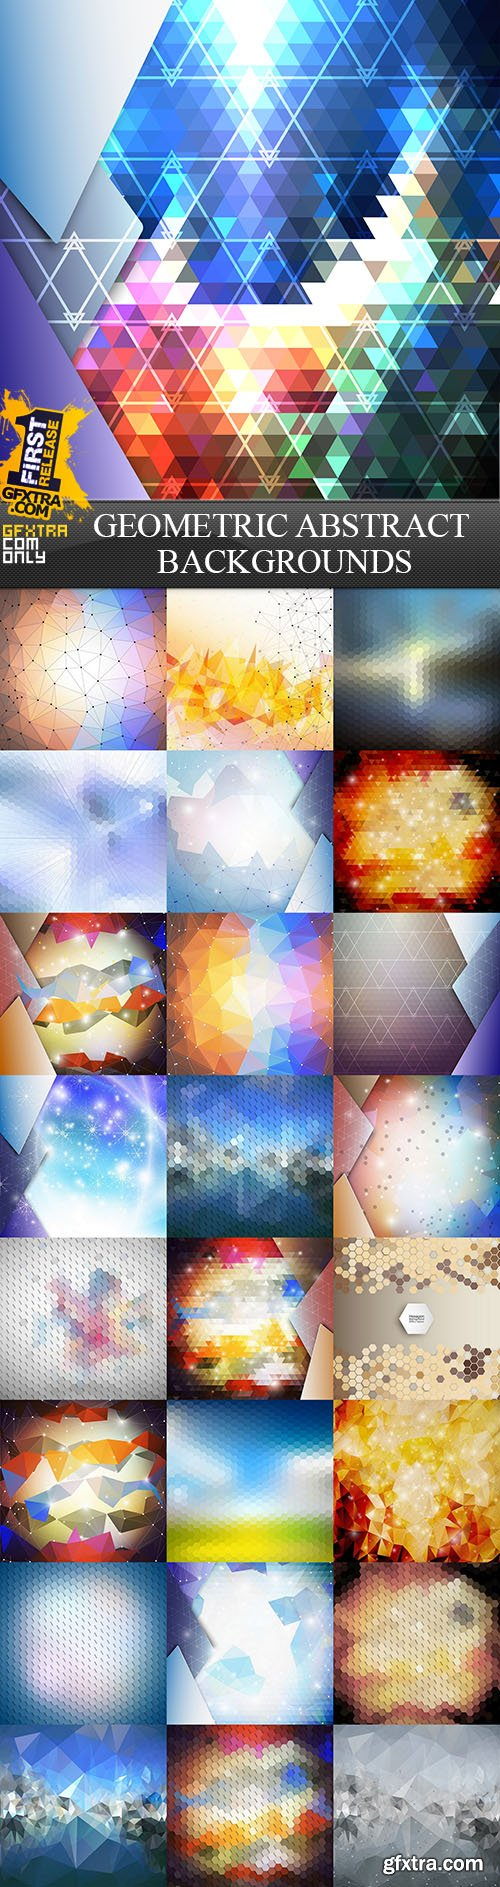 Geometric Abstract Backgrounds, 25xEPS